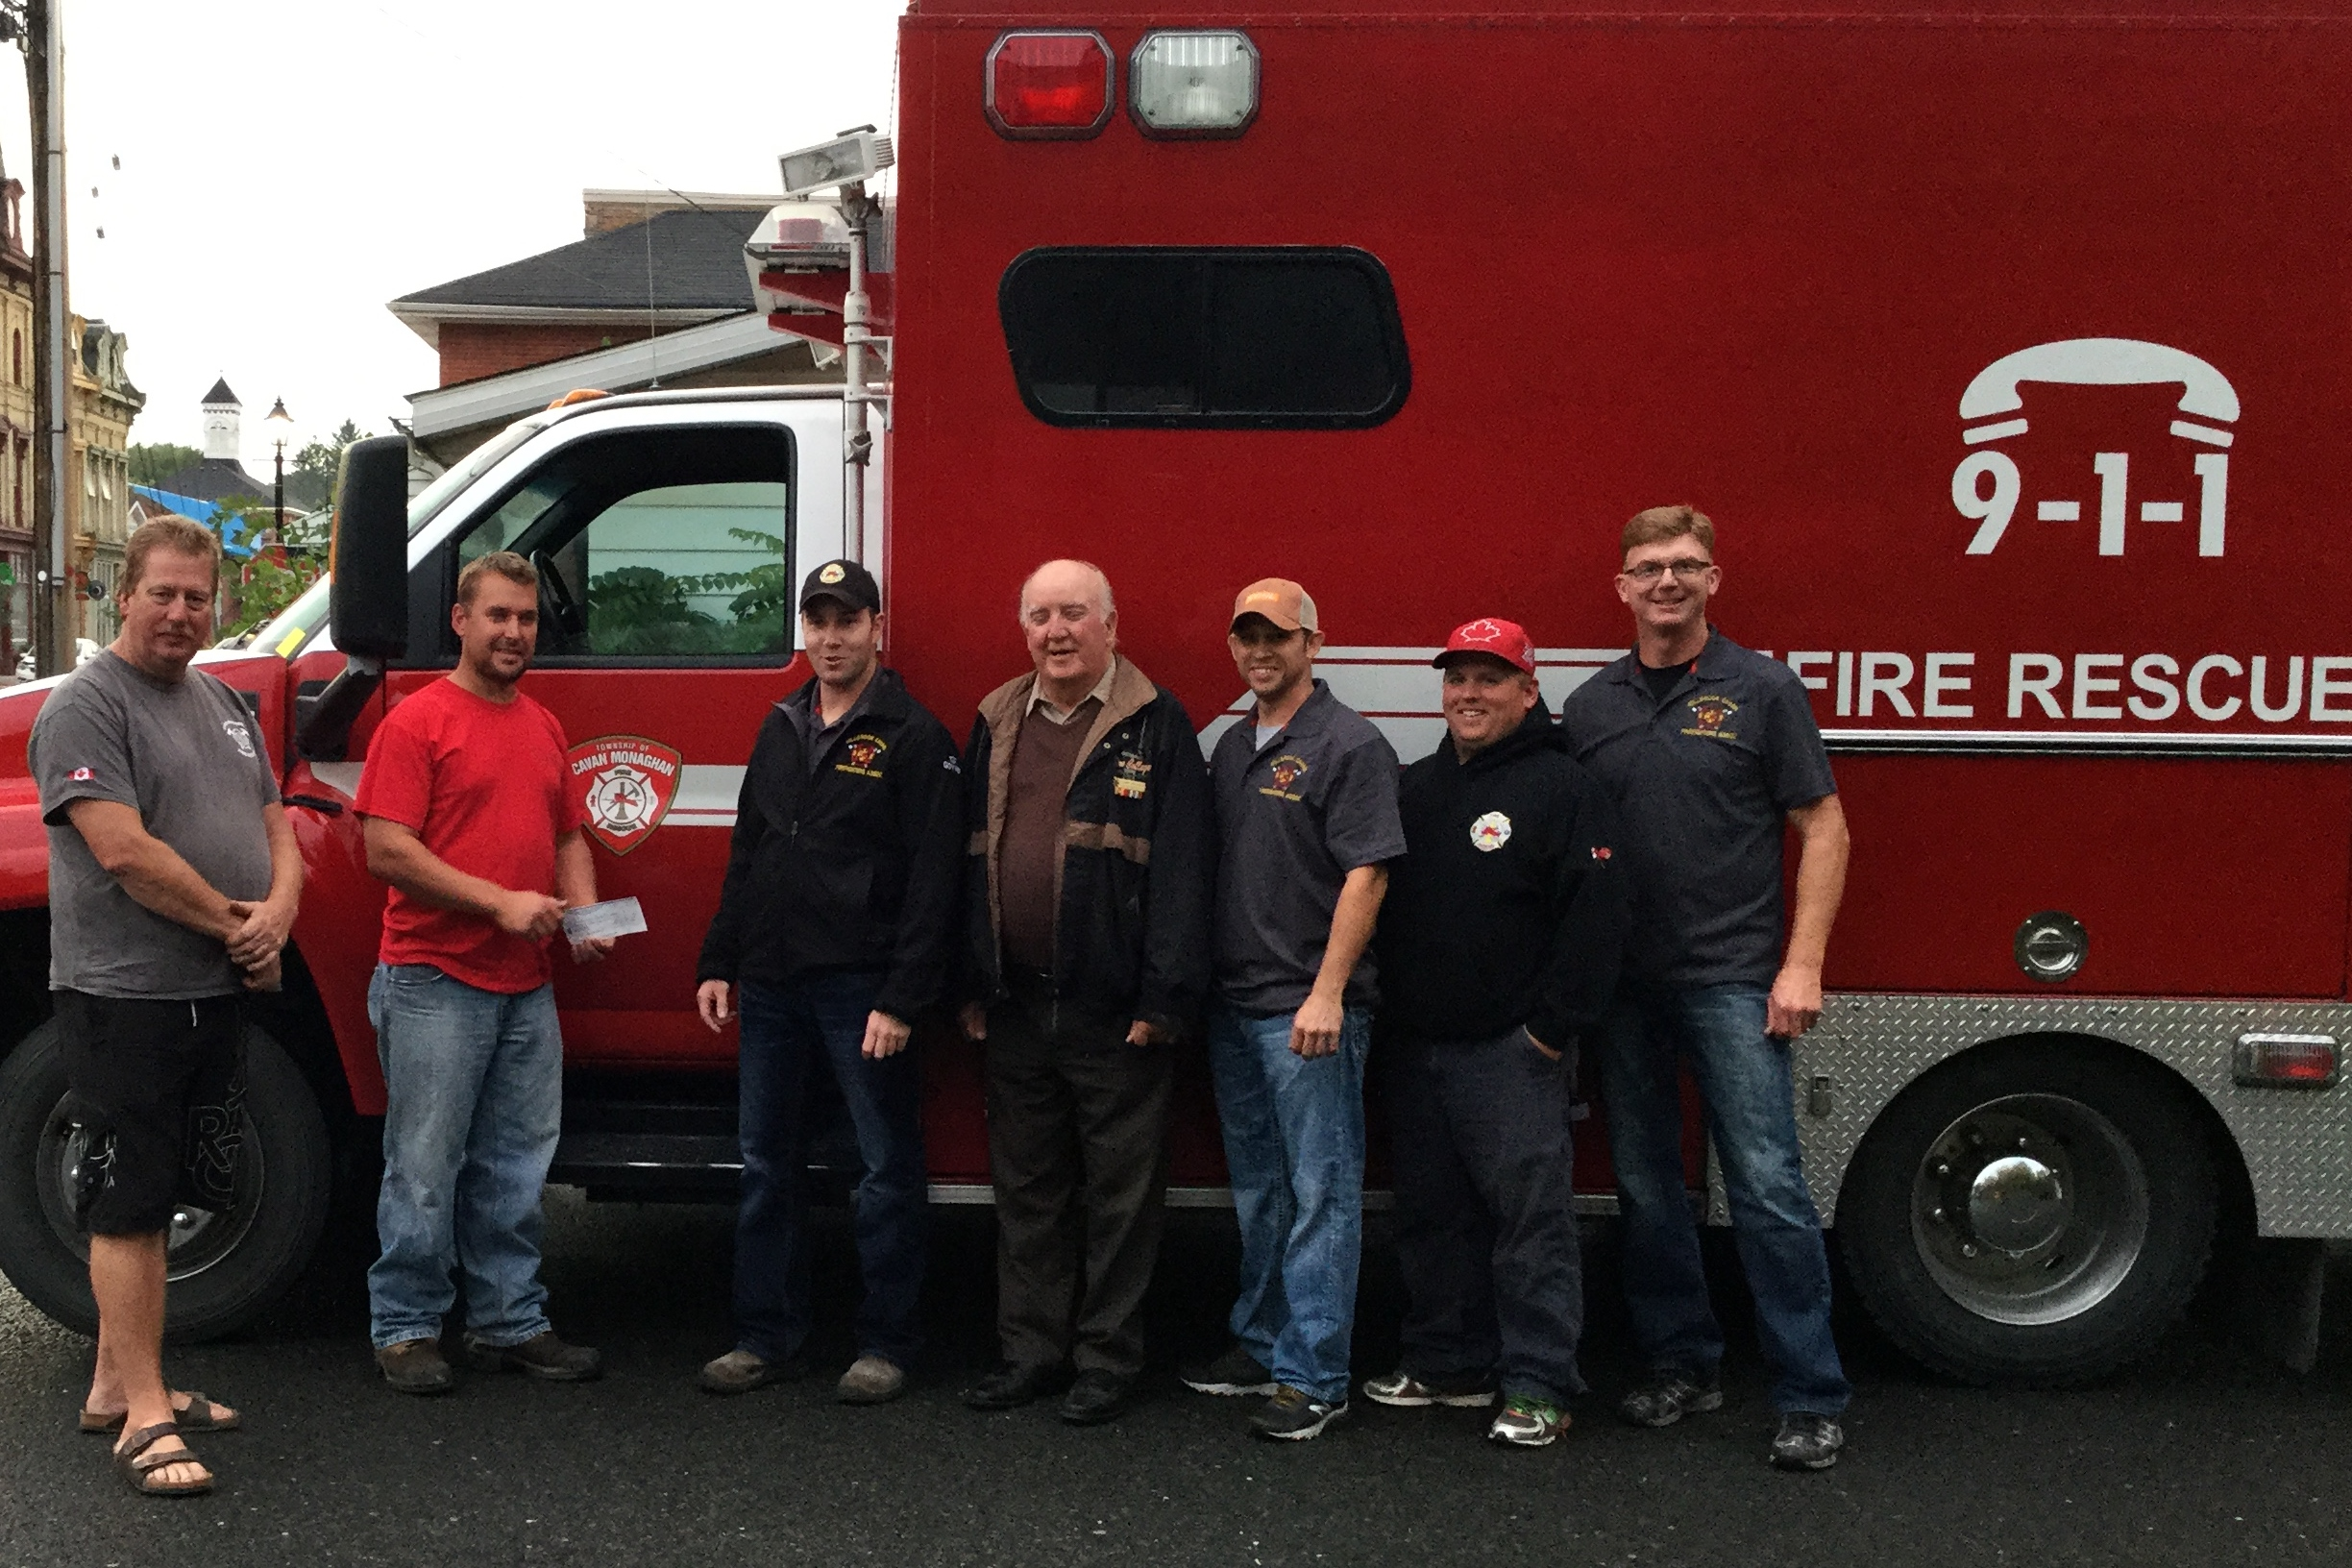 Cheque presentation of $1320 to the Millbrook Cavan Firefighters Association.  Left to right:  Firefighter Keith Shultz; Mike Telford, Cattlemen's BBQ Fundraising Chair; Adam Goyne, President of the Millbrook Cavan Firefighters Association; Larry Jinkerson, Peterborough County Cattlemen President; Steve Branscombe, Millbrook Cavan Firefighters Association Treasurer; Firefighter Matt Woodward, Firefighter Doug Wilson.